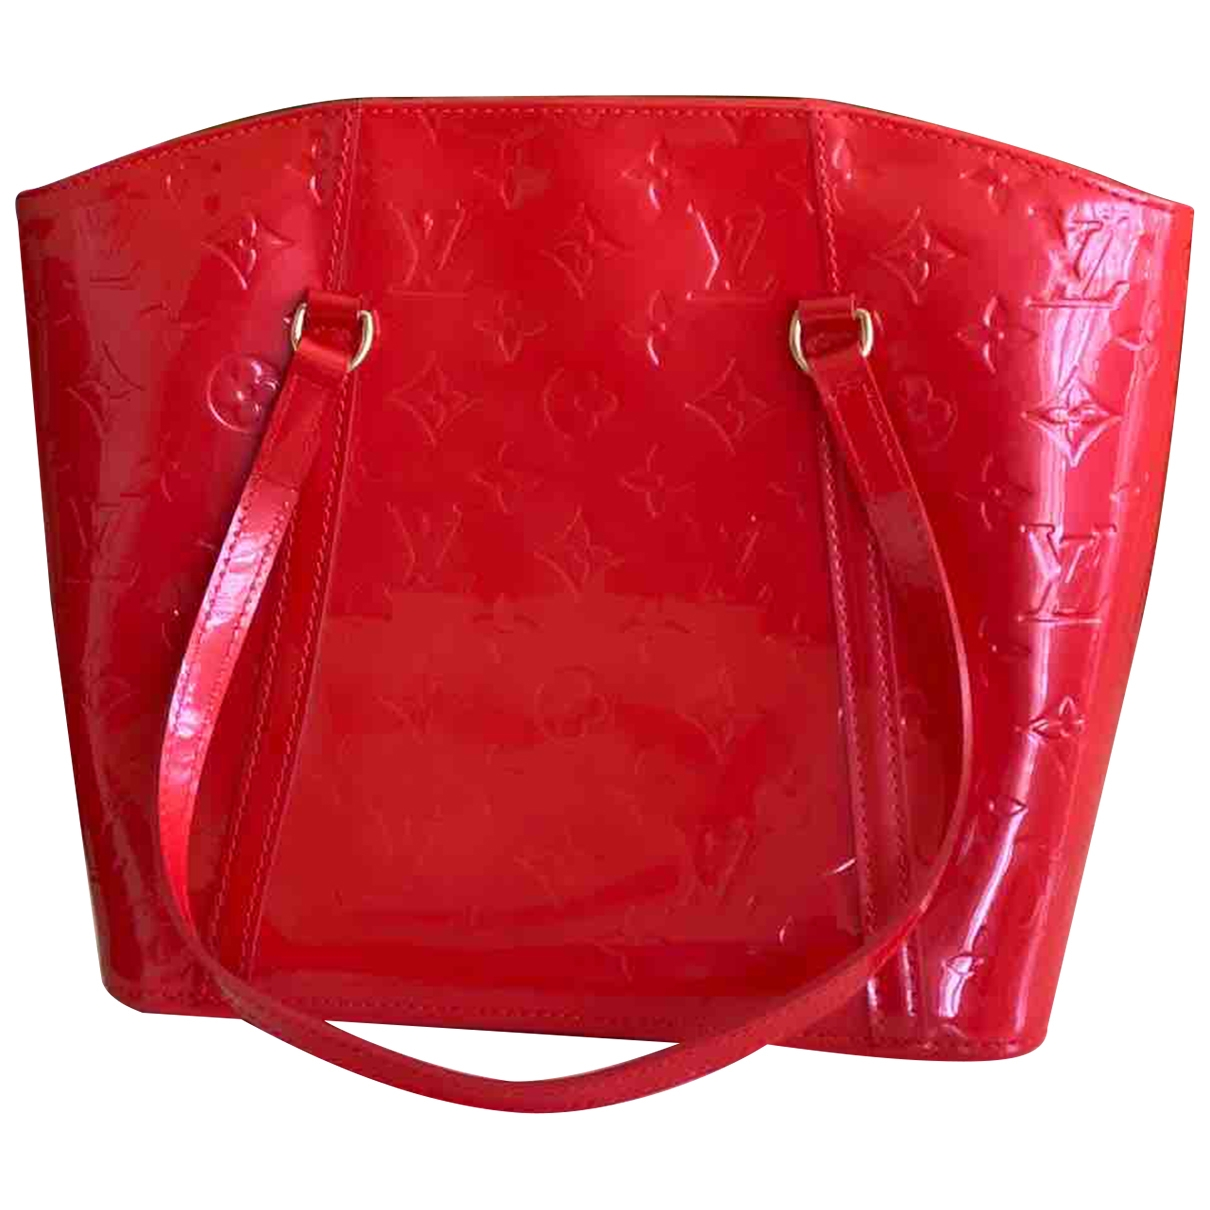 Louis Vuitton Avalon Handtasche in  Rot Lackleder